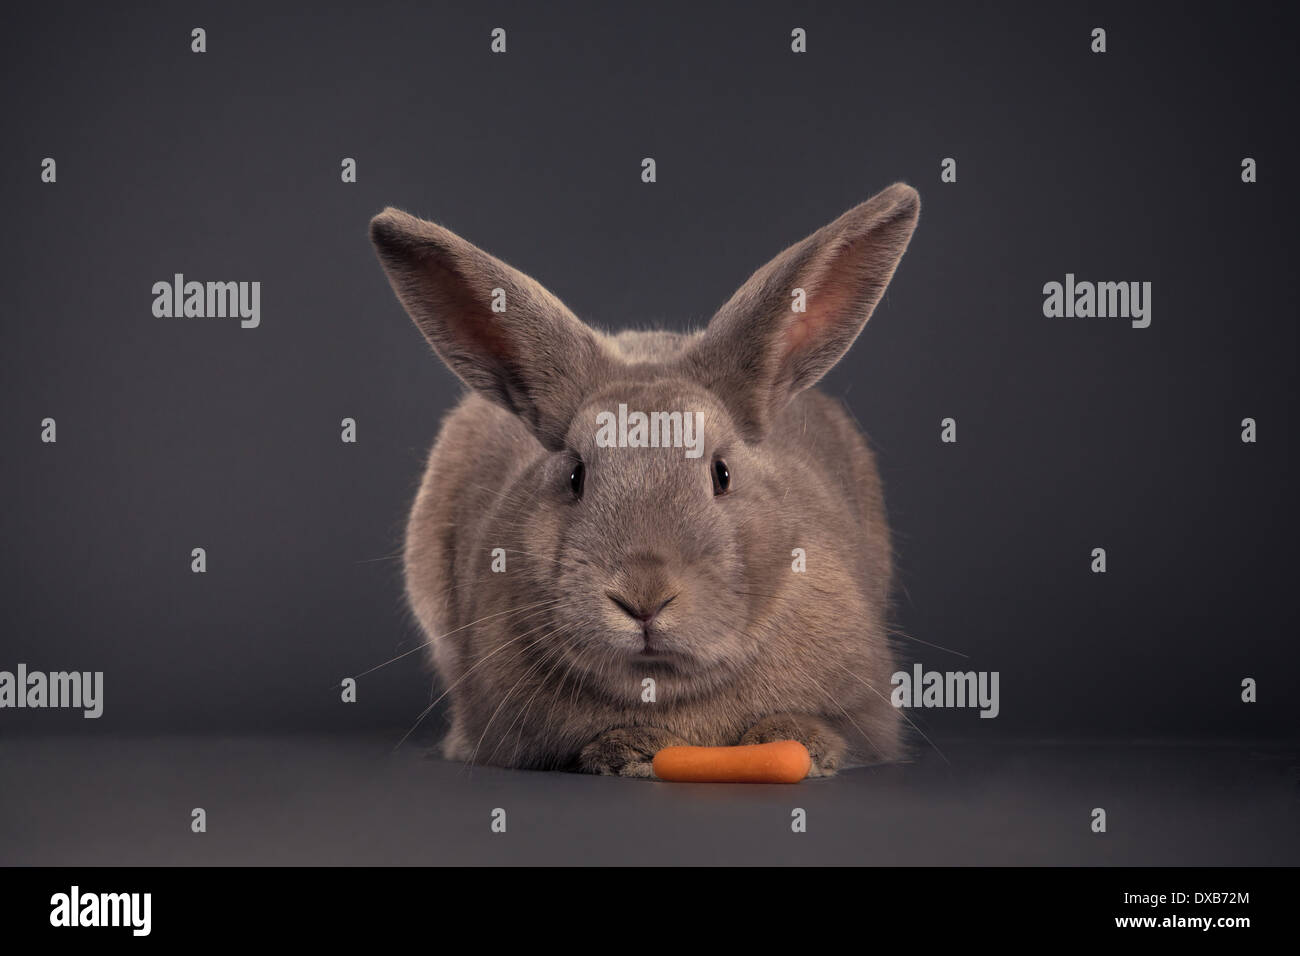 Caméra de lapin à la carotte. Photo Stock